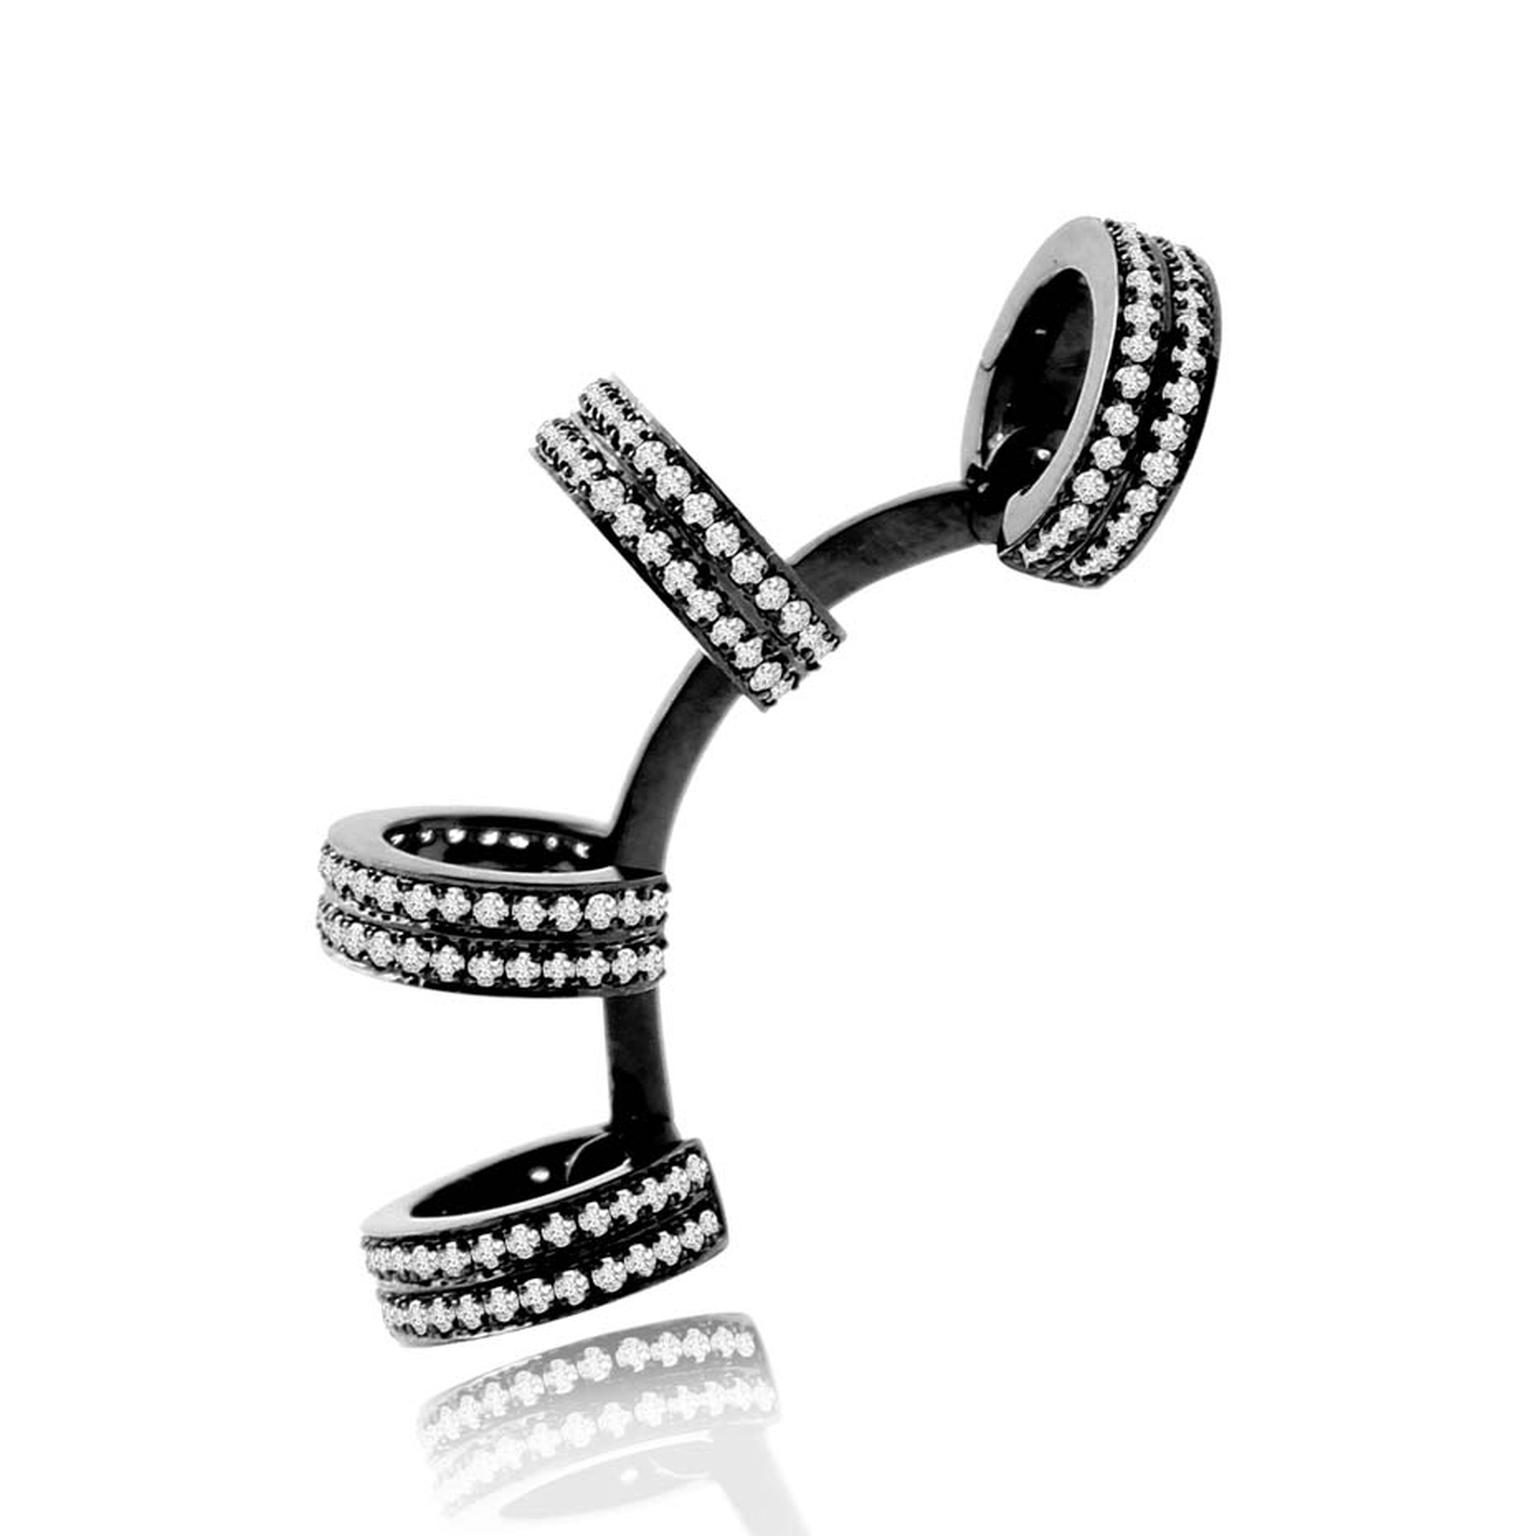 Sutra's stunning black gold and diamond ear cuff, as worn by Jessie J at this year's Grammy awards in Los Angeles.